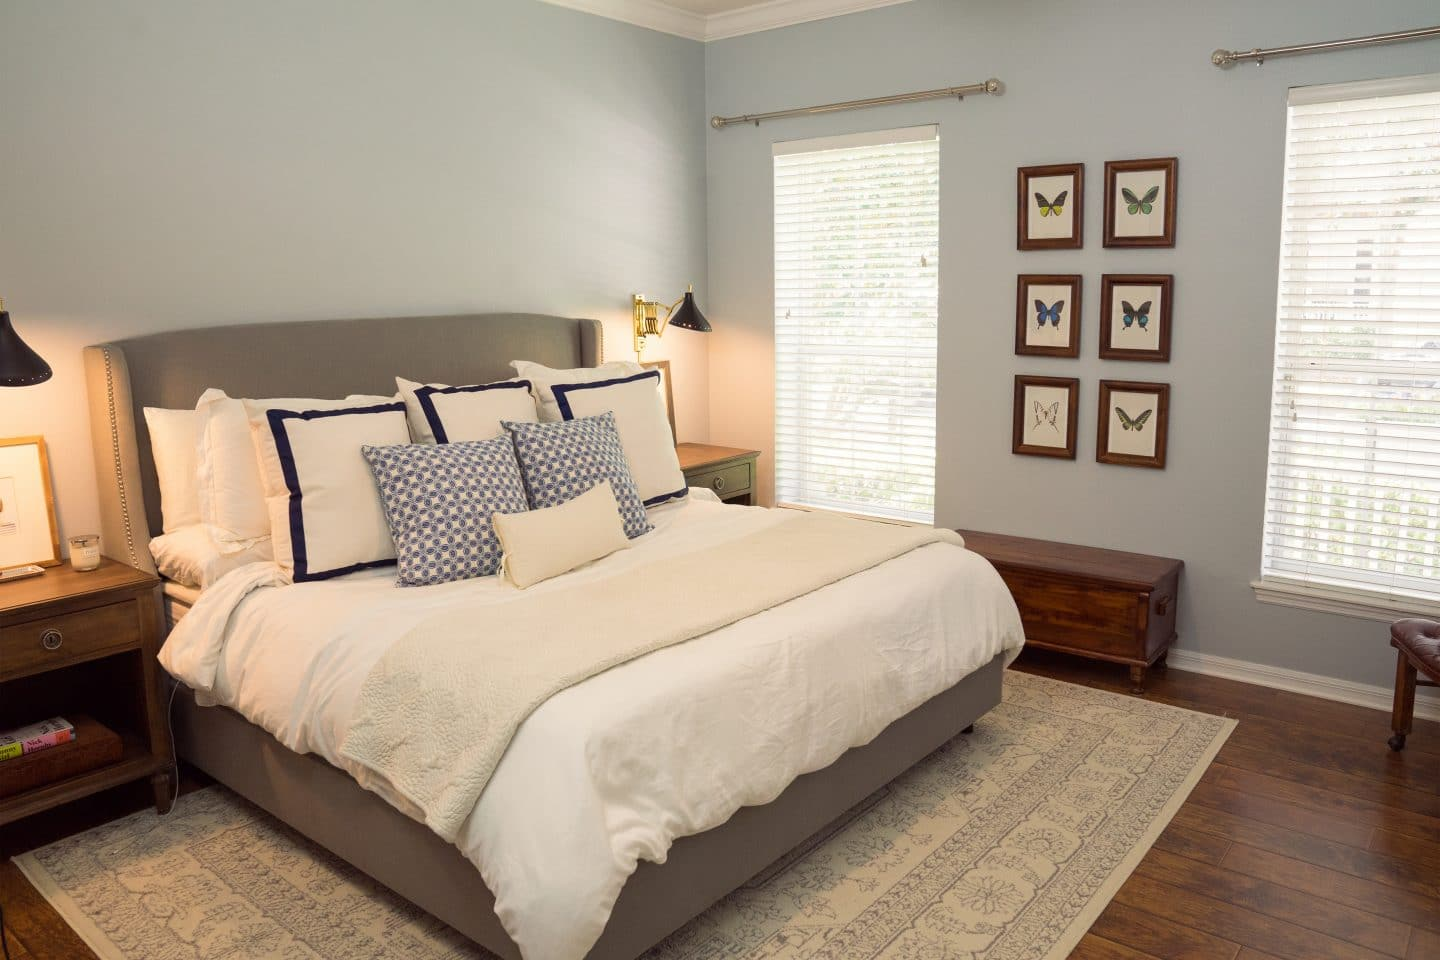 Master Bedroom Makeover - Picking White Paint - Ashley Brooke Designs